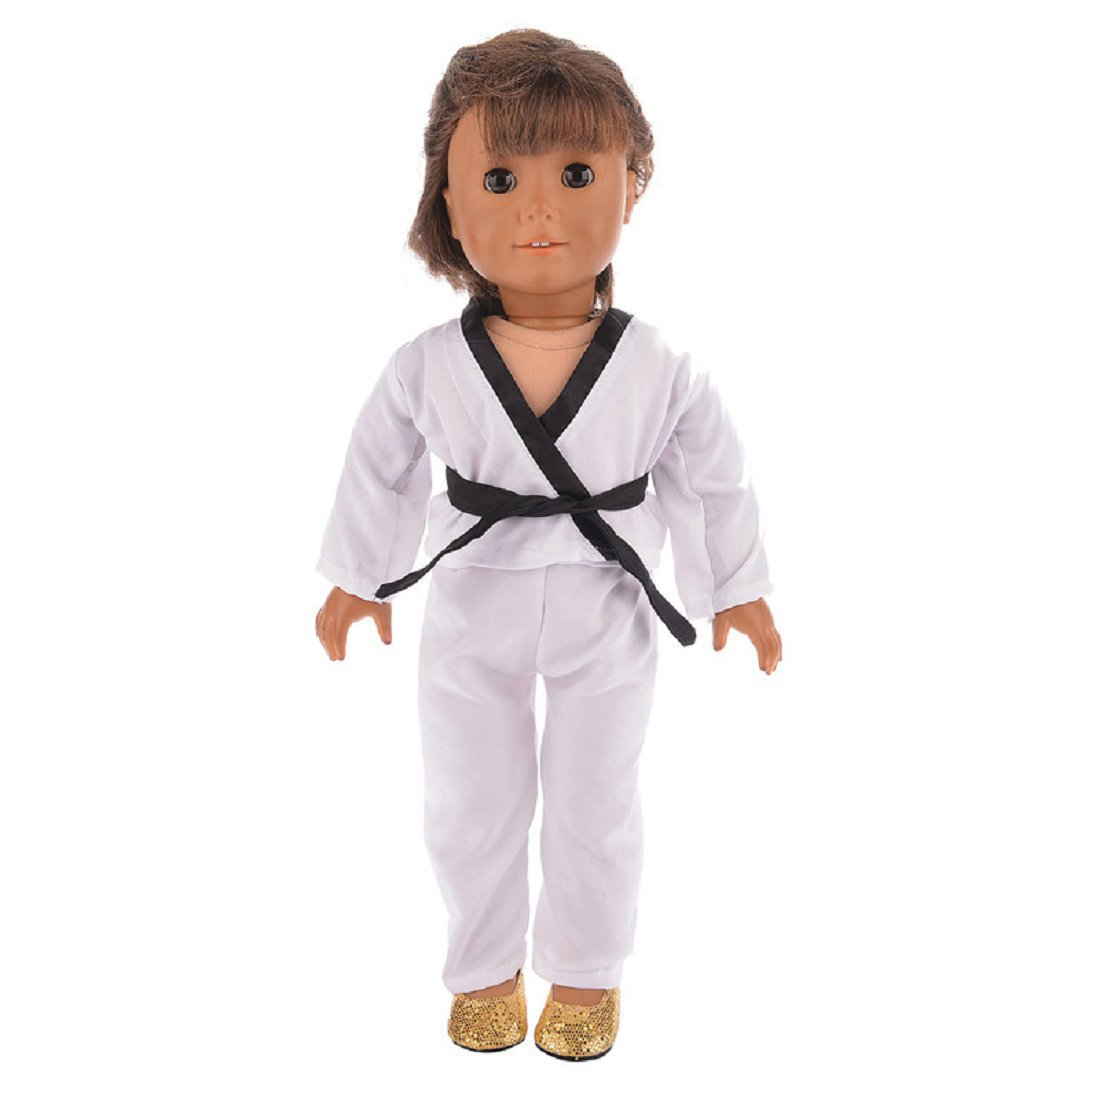 for 18inch Our Generation for American Girl Doll NA02 Lidianzhi DollNew02 Green Pants and 5 Belts red Blue and Black White Karate // Tae Kwon Do Outfit Includes Blouse Yellow